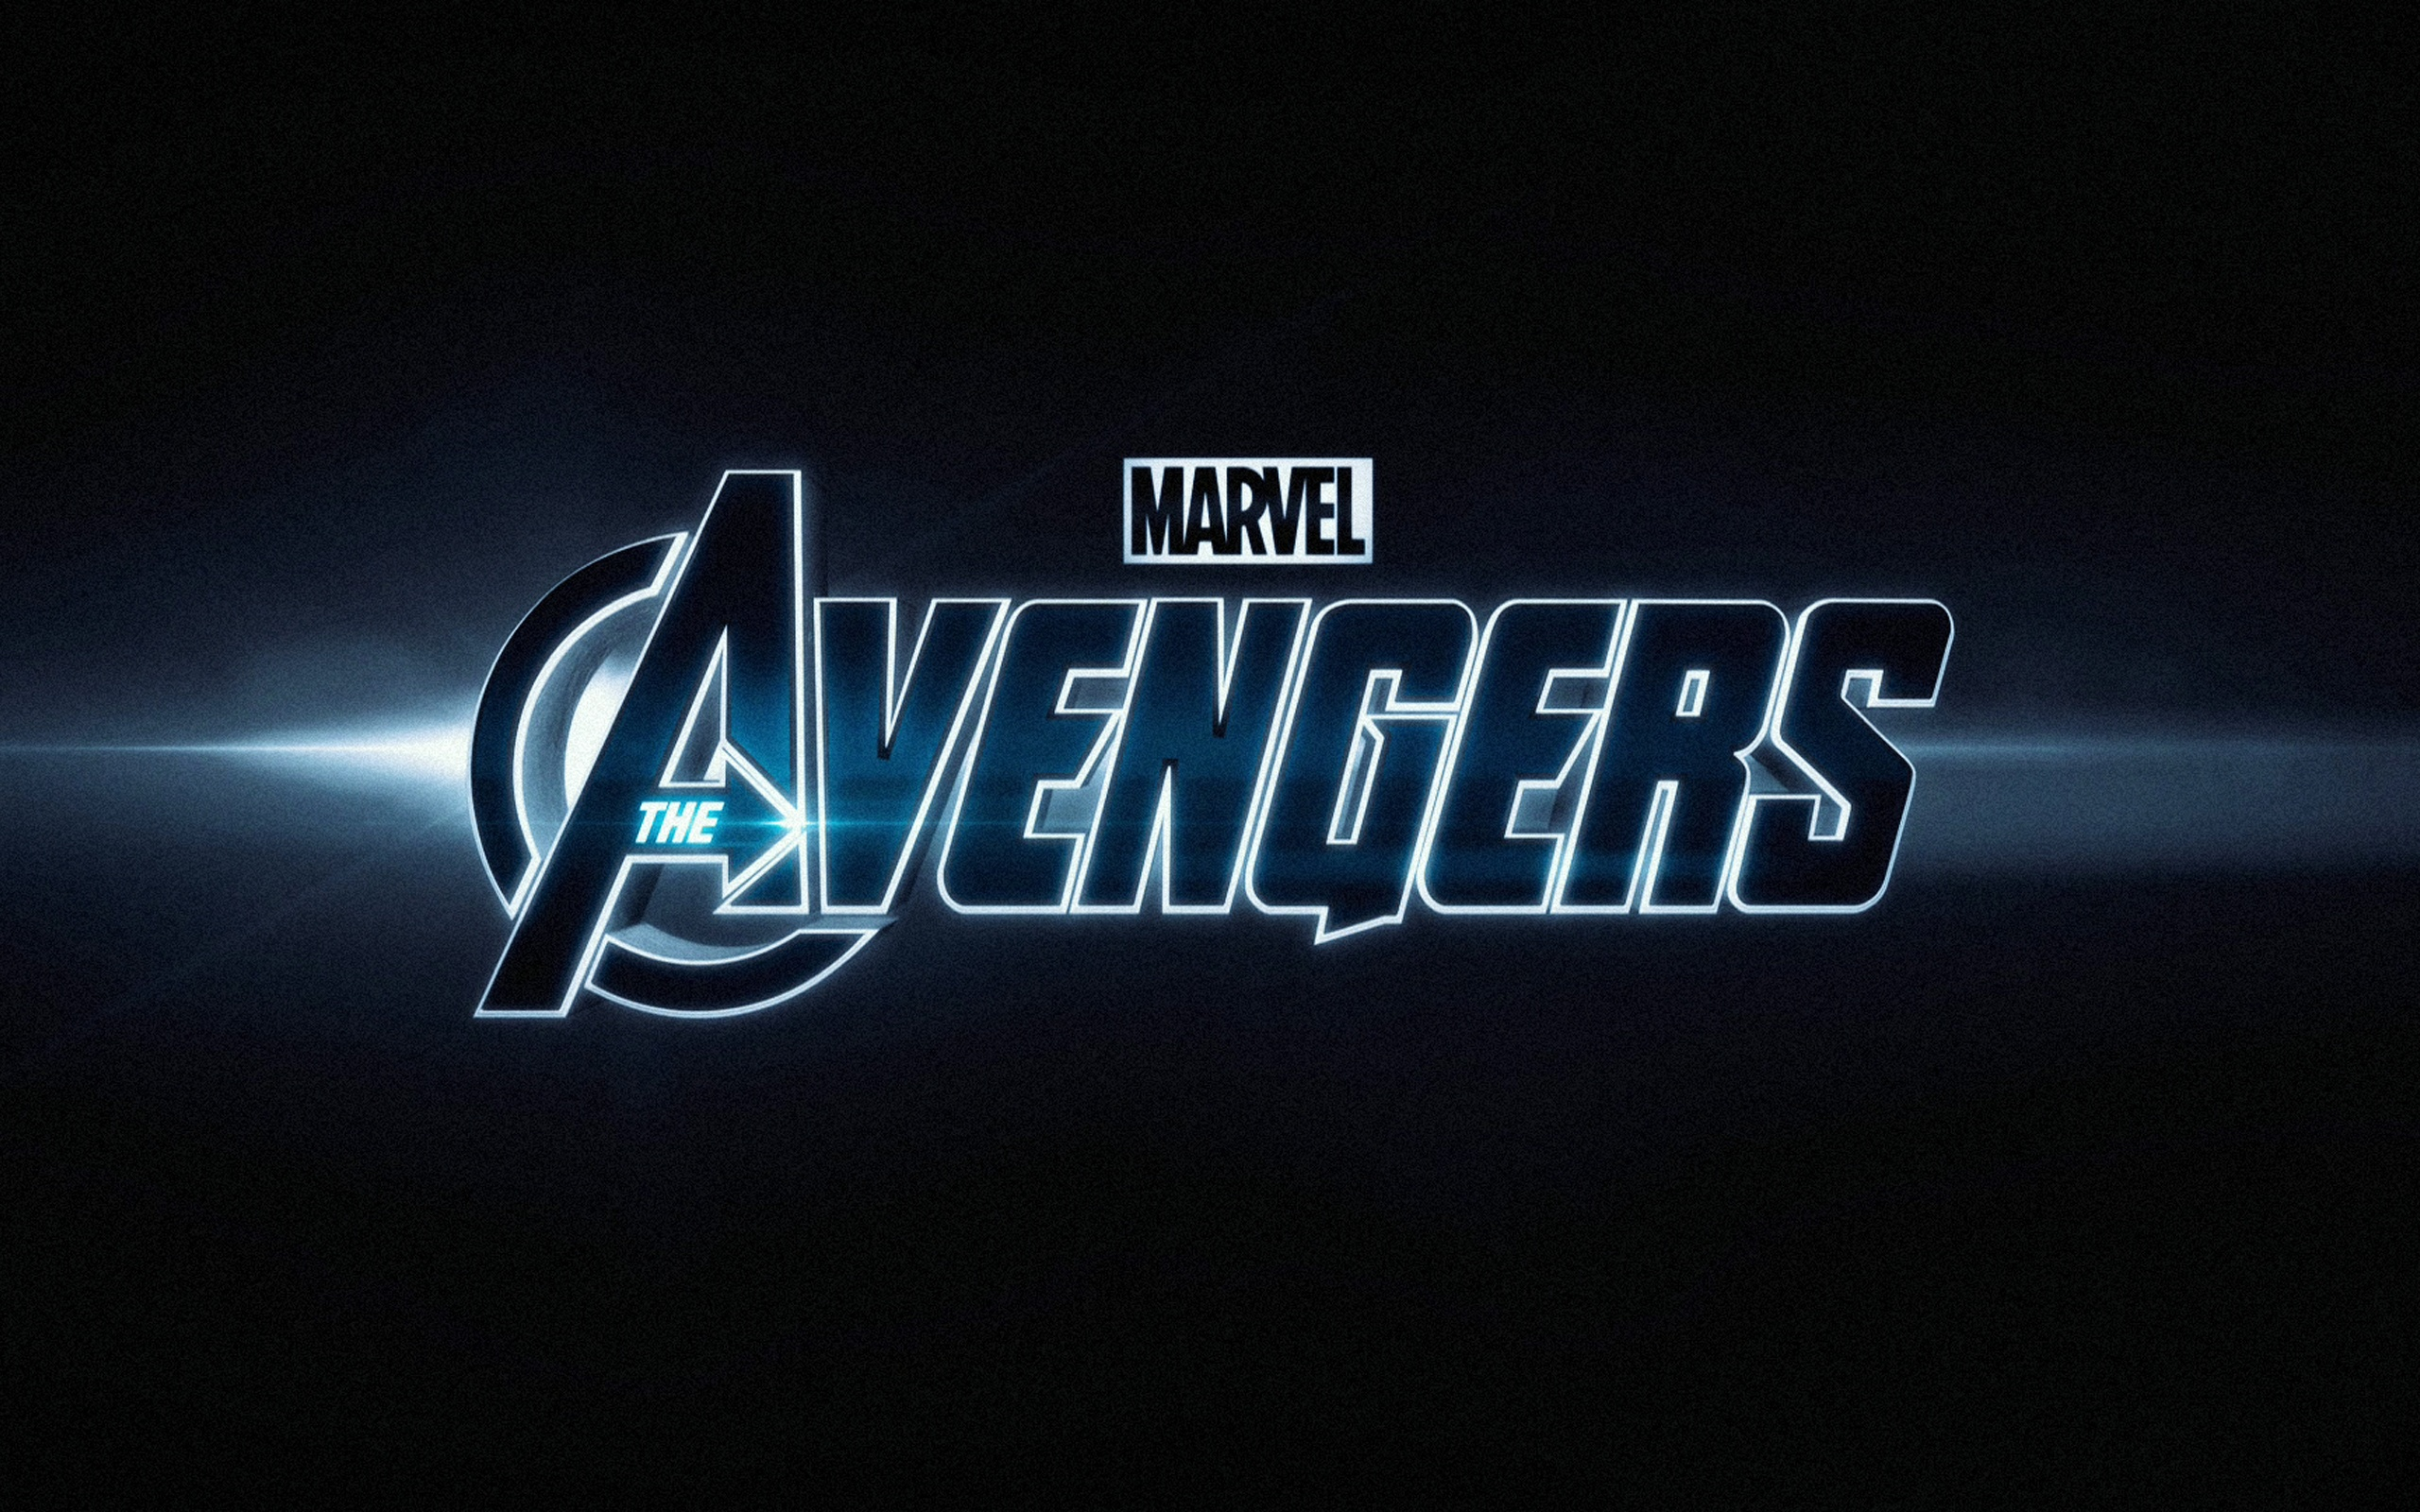 The Avengers Movie Logo Wallpapers 2560x1600 1361794